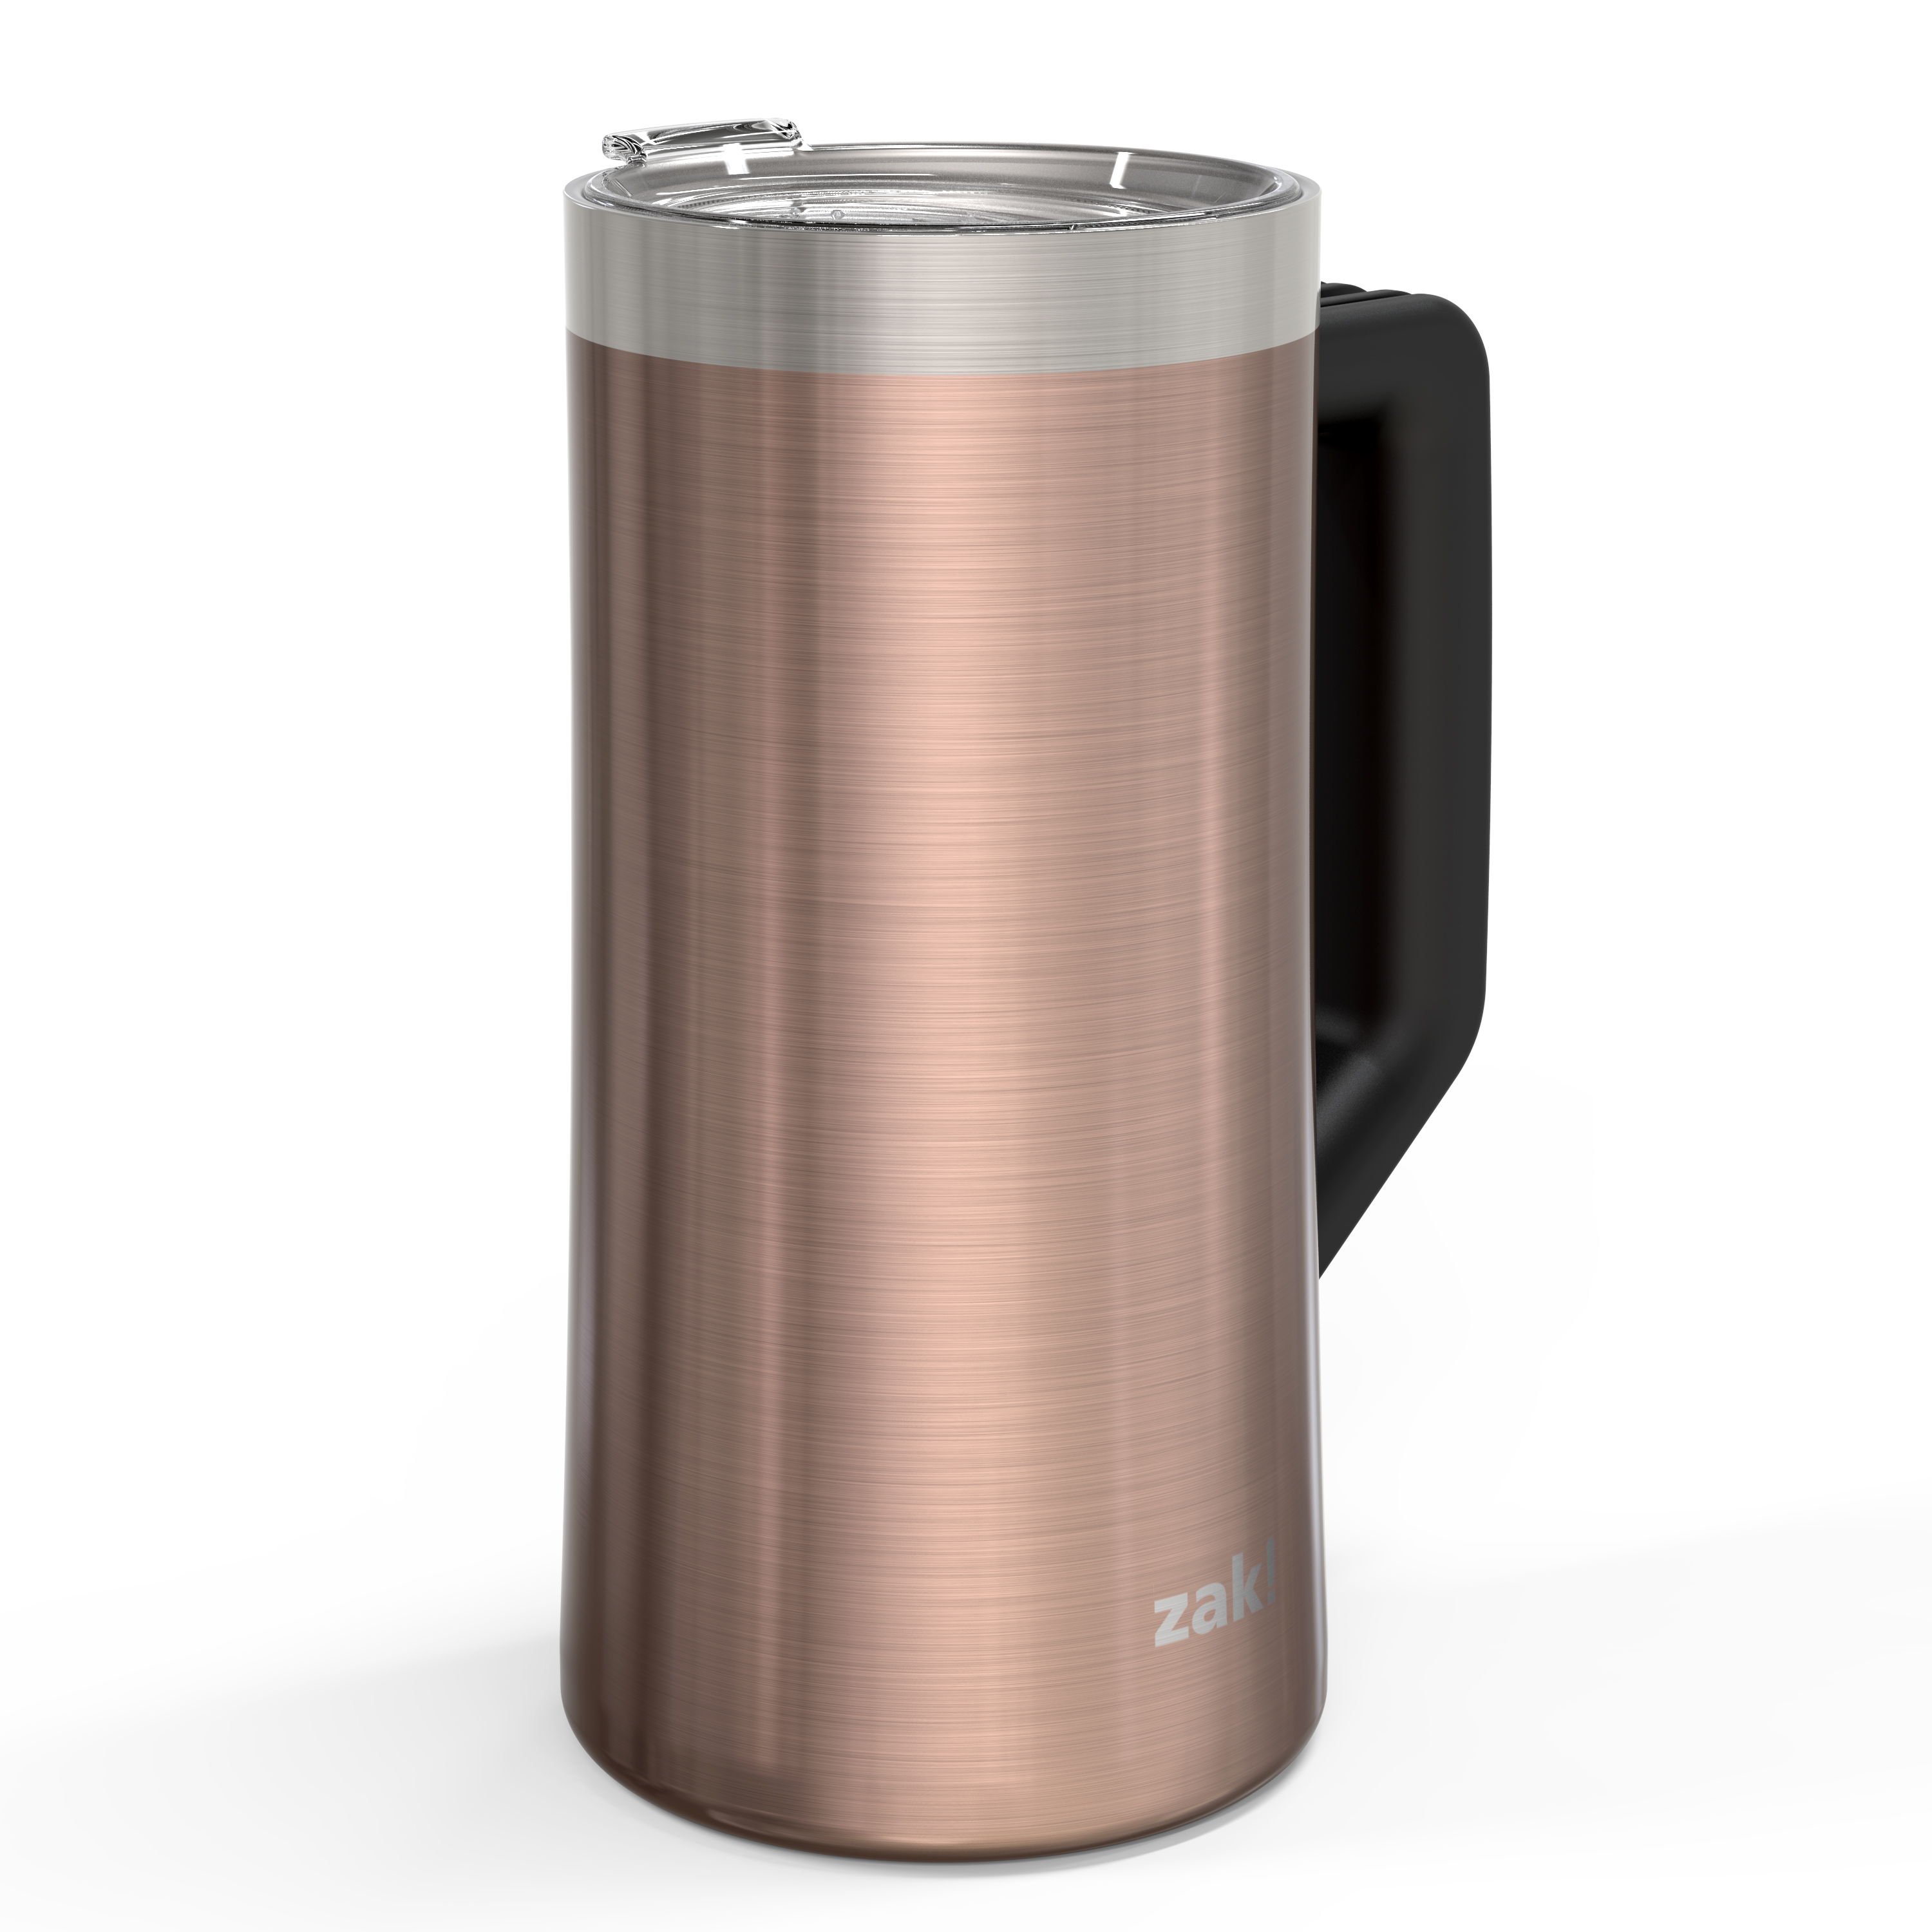 Creston 25 ounce Stainless Steel Vacuum Insulated Beer Stein, Rose Gold slideshow image 2